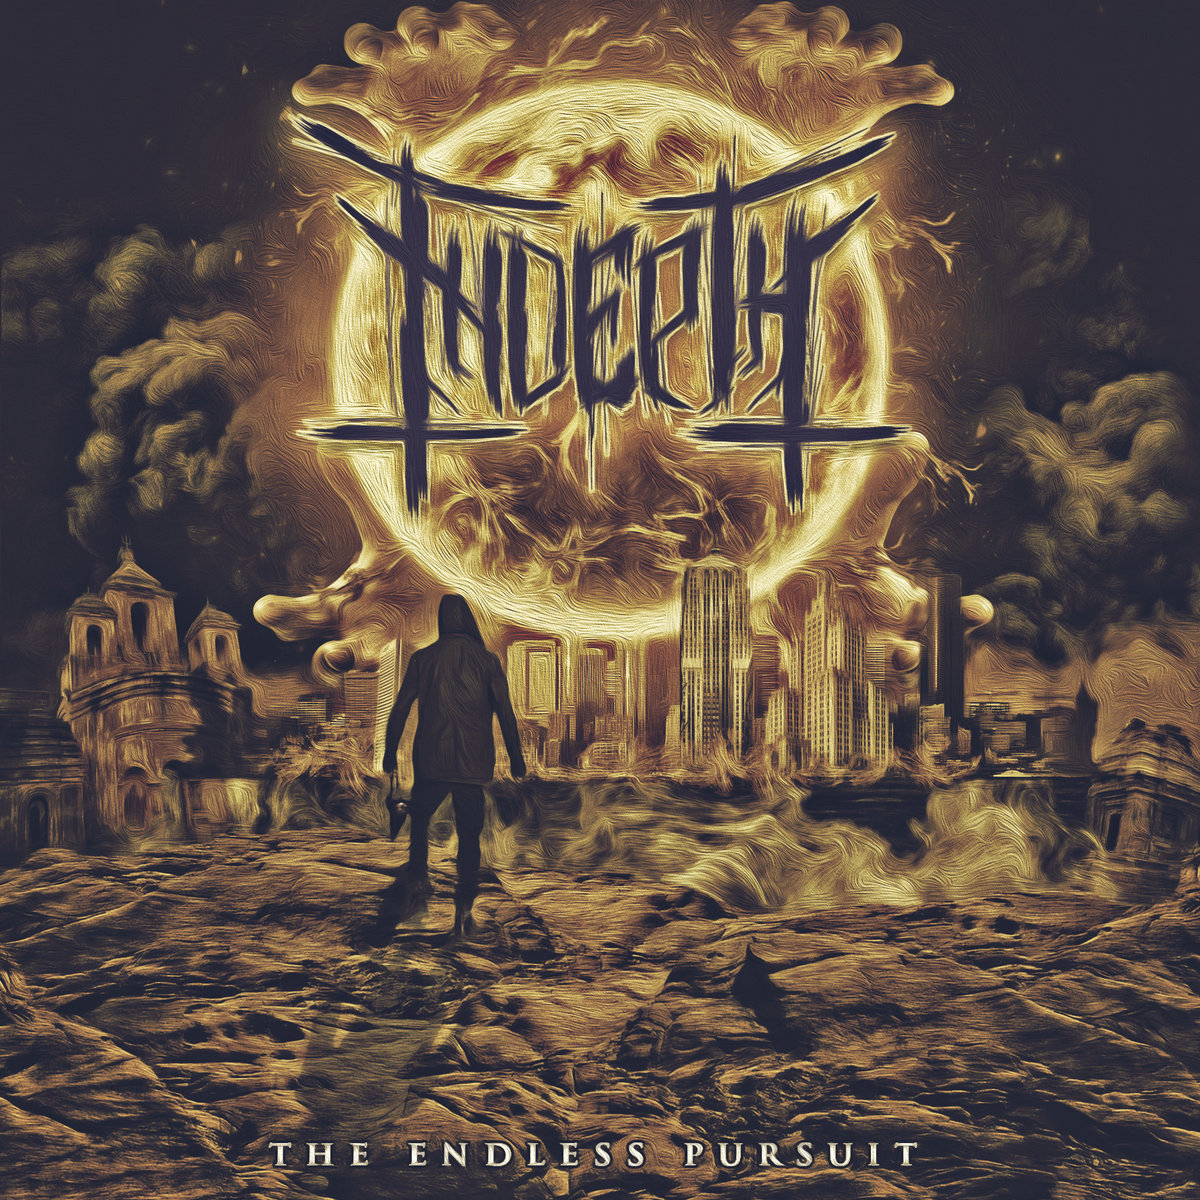 Indepth - The Endless Pursuit